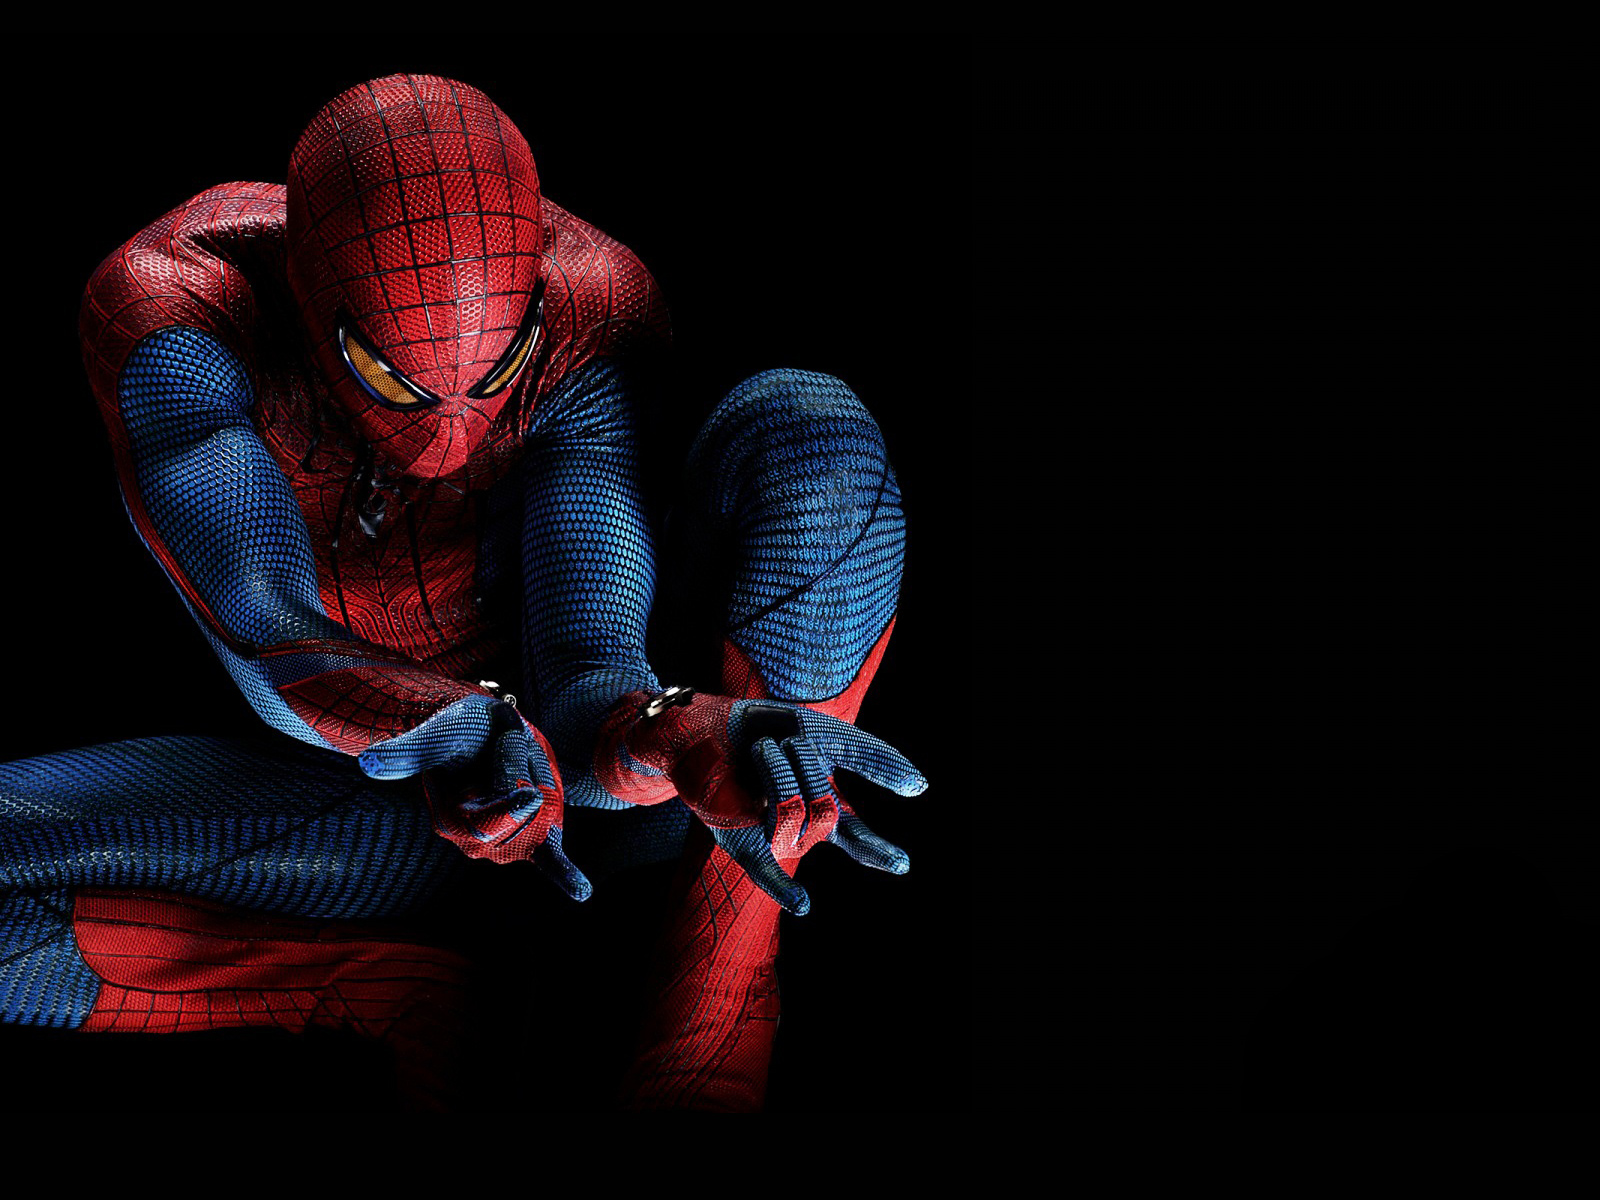 Amazing Spider Man 4 2791.14 Kb